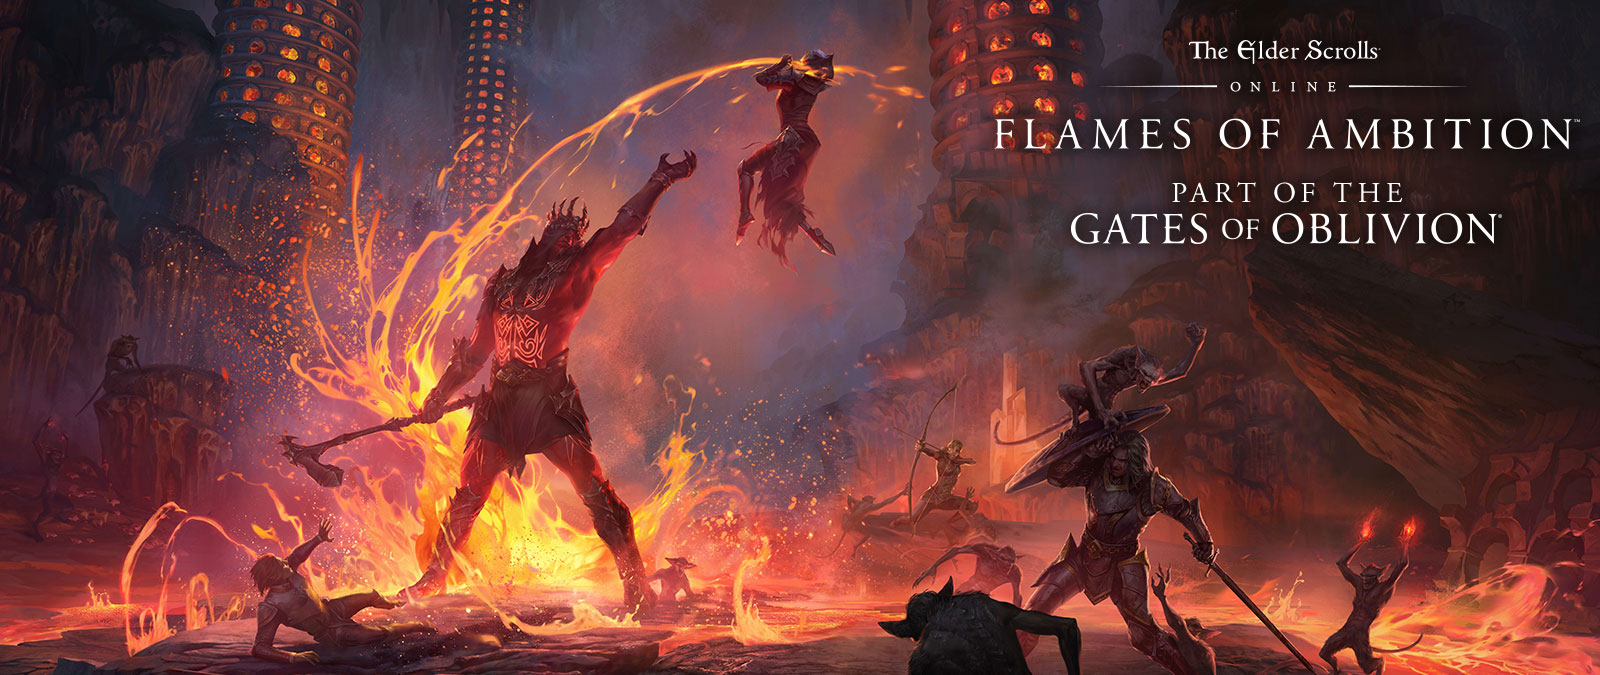 The Elder Scrolls Online: Flames of Ambition. Part of the Gates of Oblivion. Knights fighting demons and a large monster with lava.